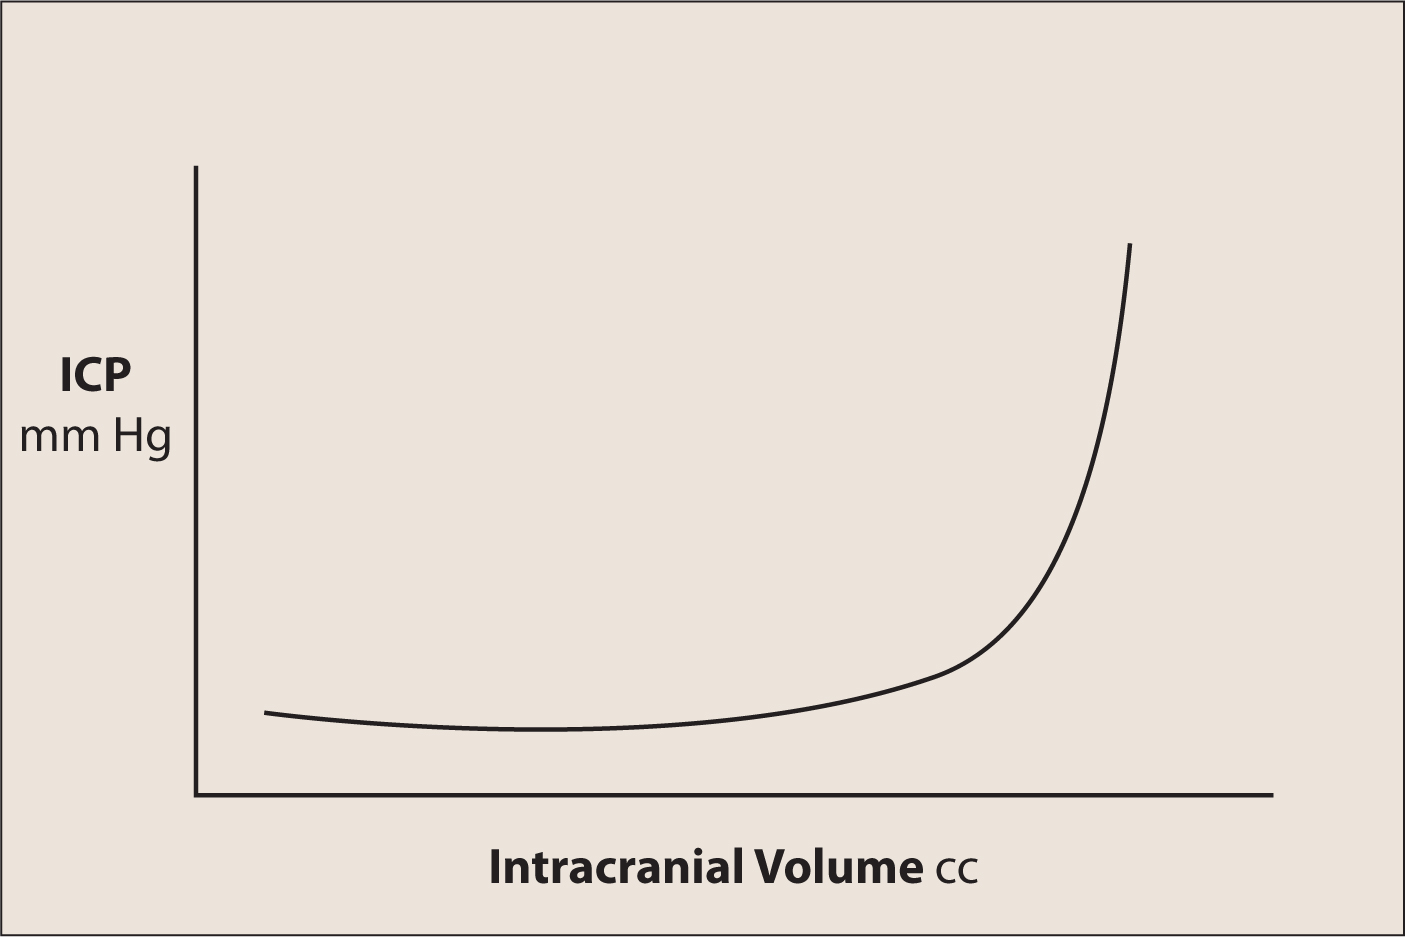 Relationship of ICP to Intracranial Volume